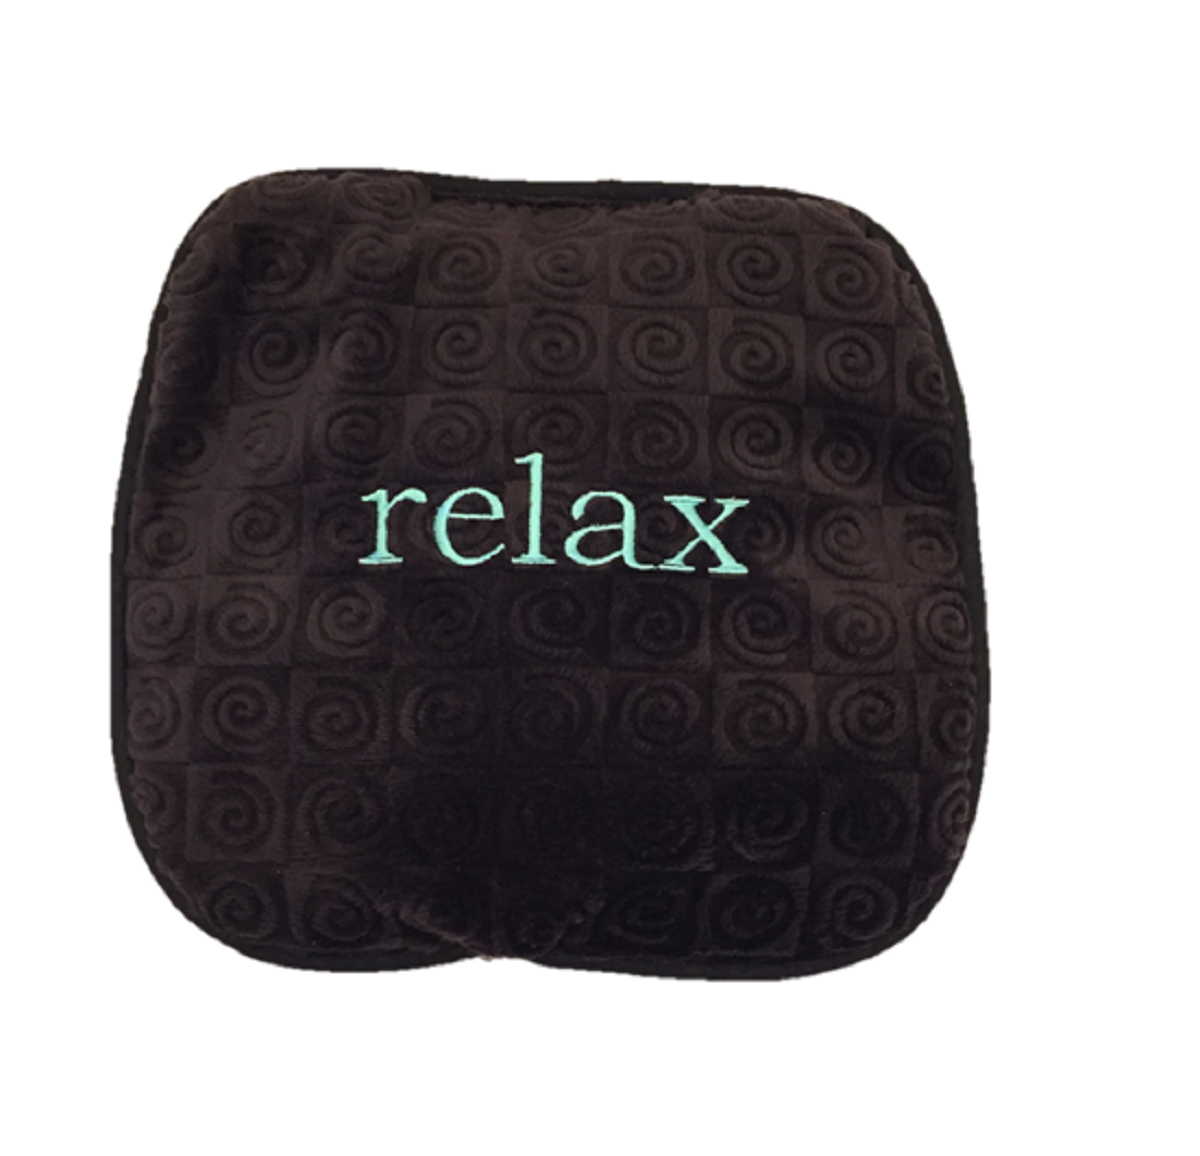 Stomach Heating Pad Quot Relax Quot Embroidered Herbal Microwave